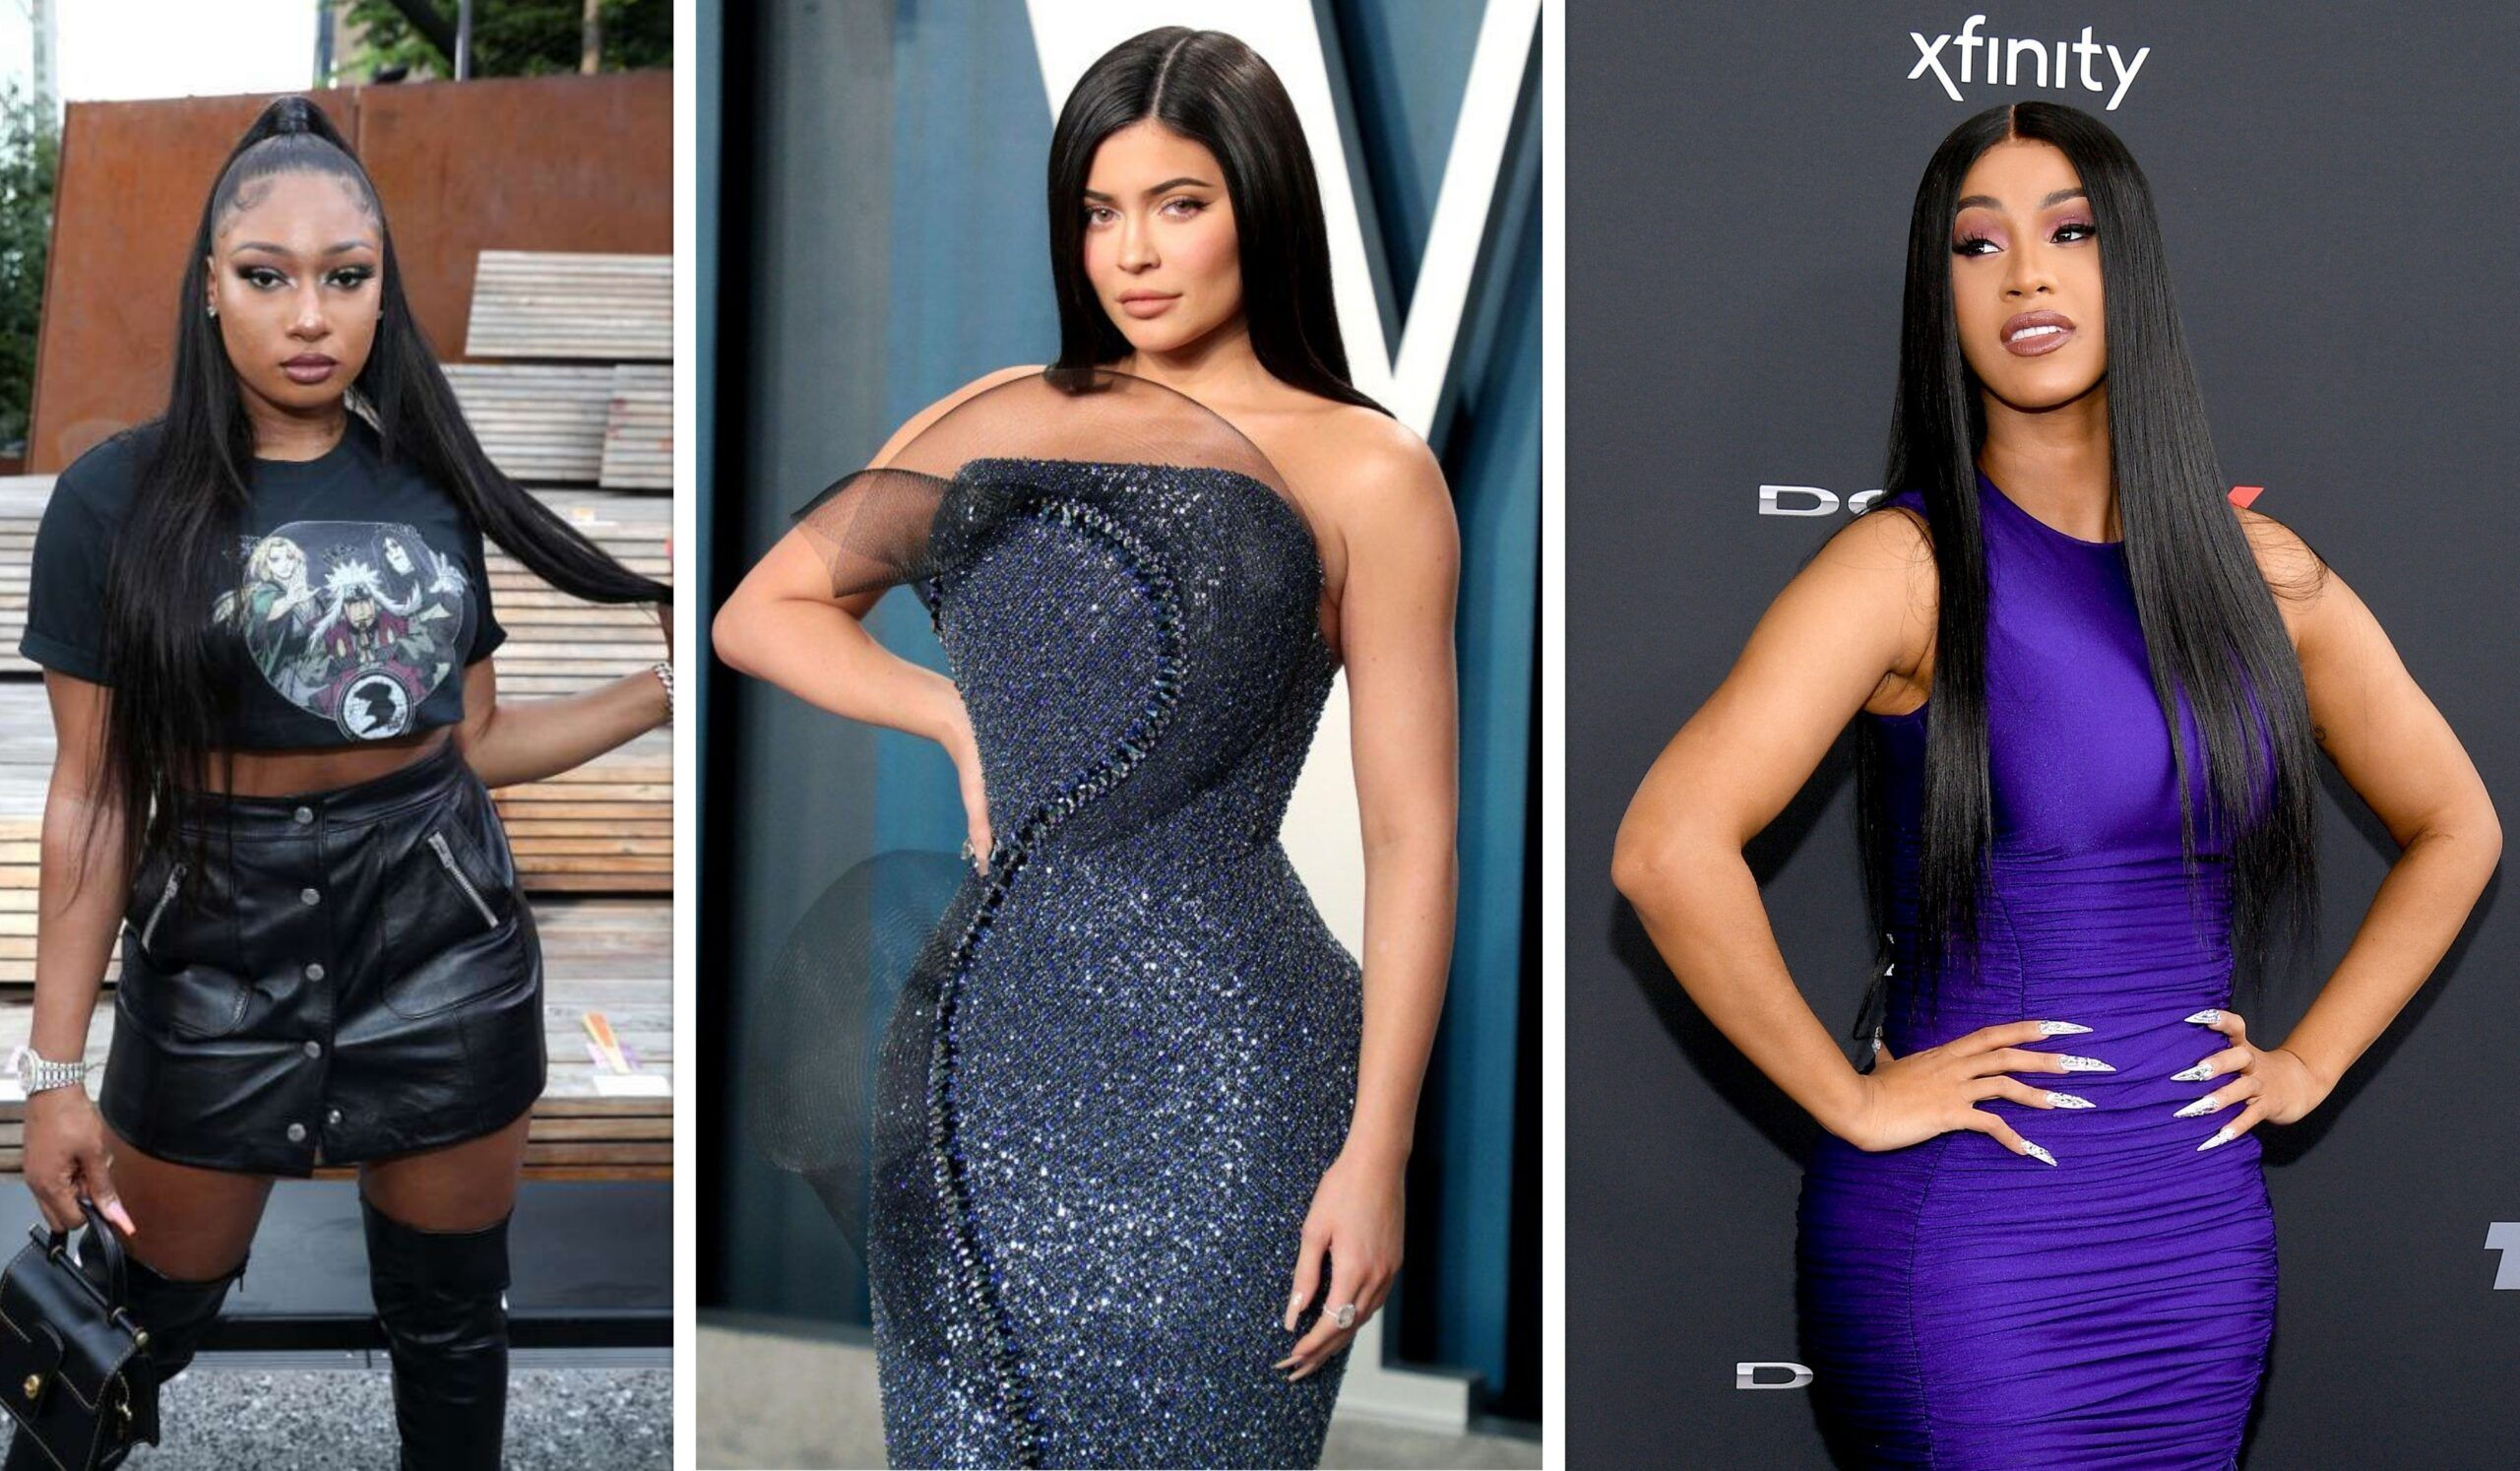 Cardi B And Megan Thee Stallion S Wap Music Video Includes A Kylie Jenner Cameo Top Fashion In 2020 Top Styles Cardi B Kylie Jenner